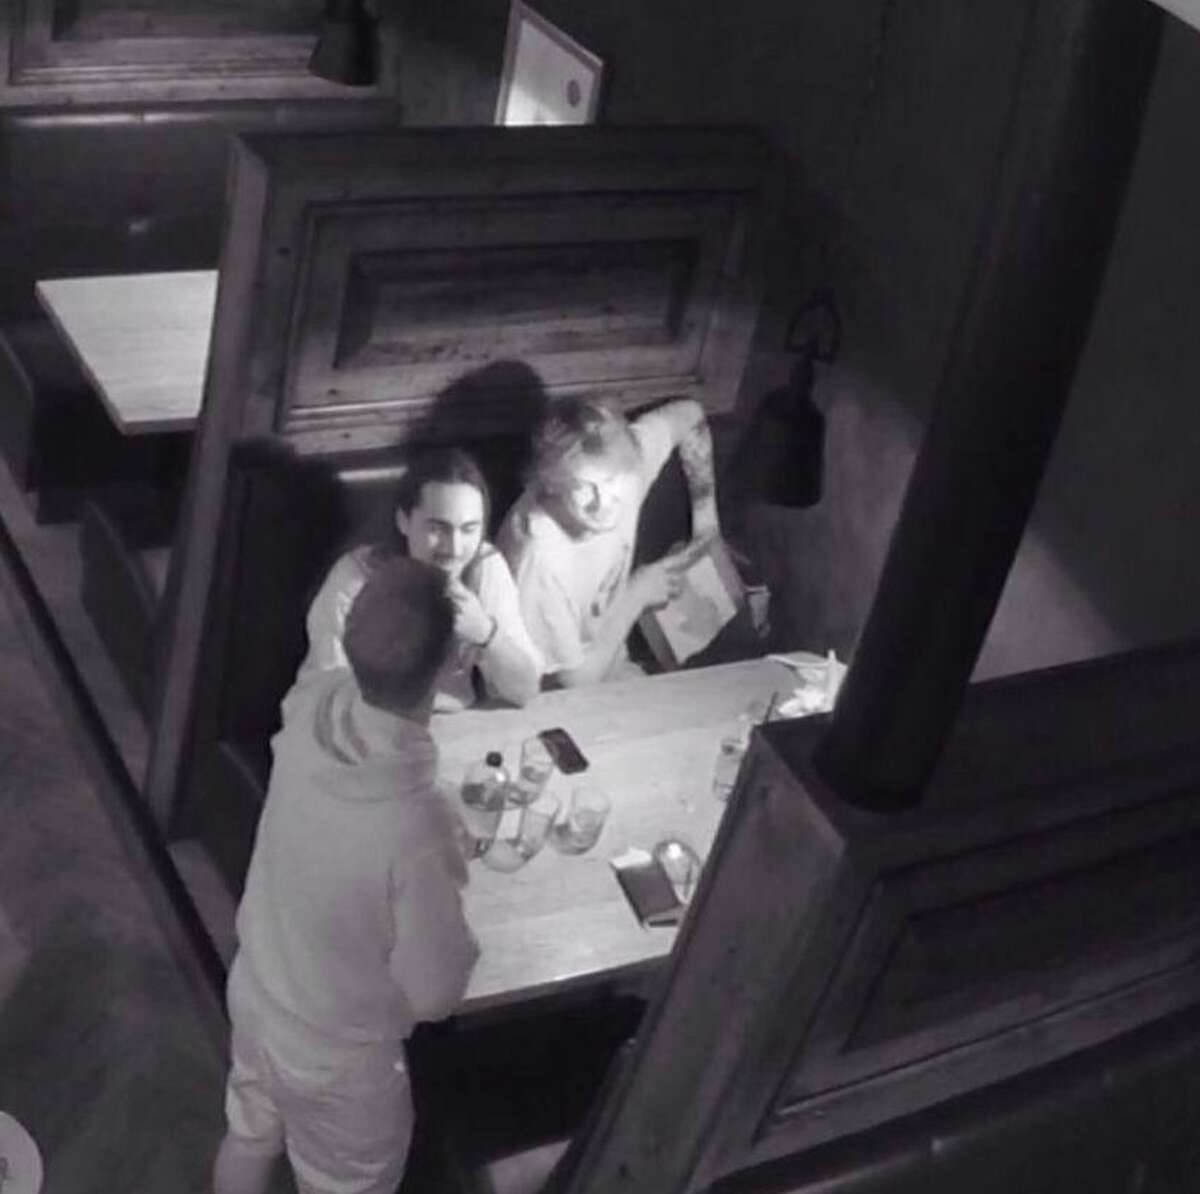 This photo provided by Tyler Christensen, shows a surveillance photo of a man placing a painting in his backpack at the McMillan Bar and Kitchen in Flagstaff, Ariz. Two accomplices in the theft of the painting at the restaurant have come forward after a shaming campaign on Facebook. Tyler Christensen, the owner of McMillan Bar and Kitchen, went to social media instead of police after the painting went missing on June 9, 2014. Christensen posted an open letter and surveillance photo. He says the two accomplices have since come forward and given $500 to cover the cost of the artwork. Christensen's Facebook post has been shared more than 7,900 times and received more than 4,300 likes and nearly 770 comments.